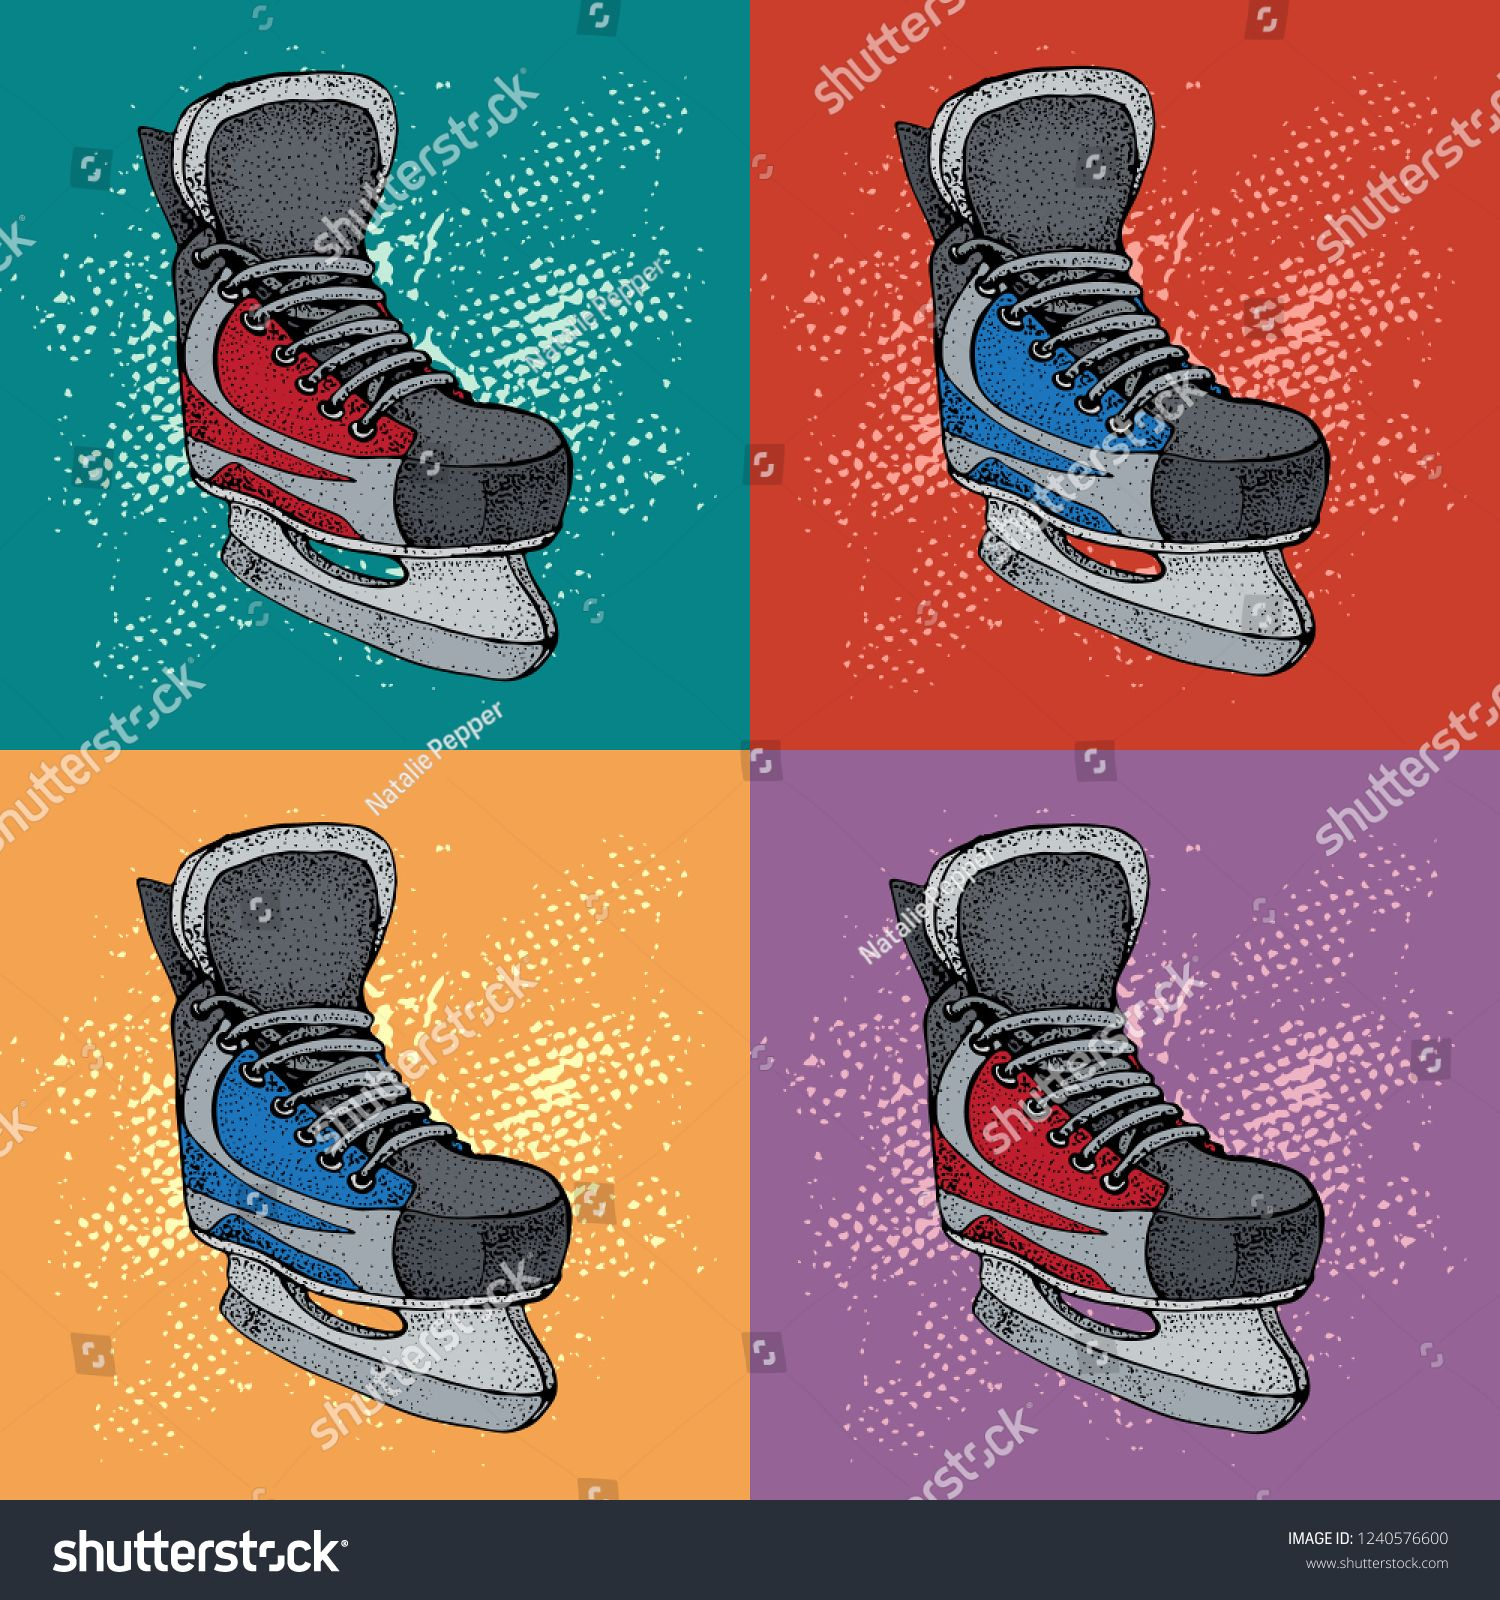 Winter Holidays Pattern With Ice Skates Cartoon Sketch Red And Blue Ice Hockey Skates Vector Illustration W Holiday Patterns Cartoon Sketches Winter Holidays